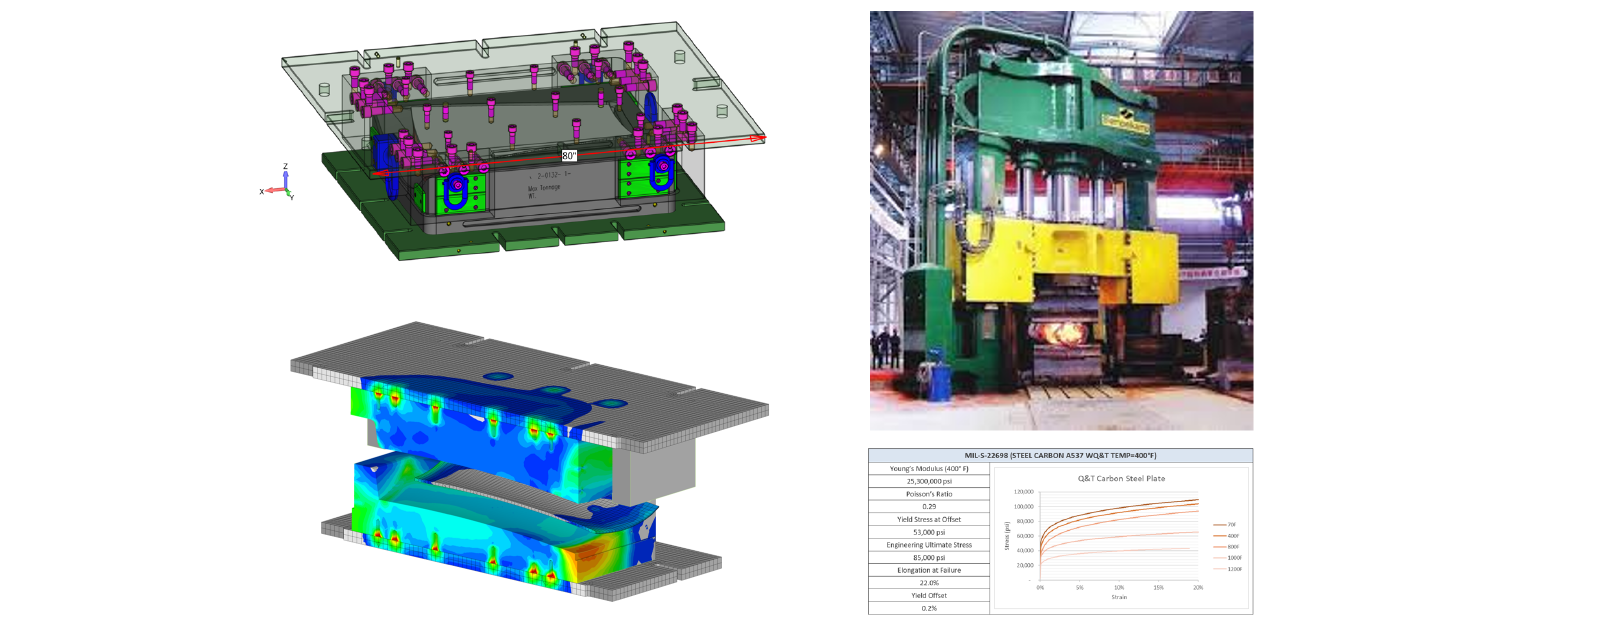 Low-Cycle Fatigue Analysis of Forging Die under 5,000 Ton Load - FEA Consulting Service